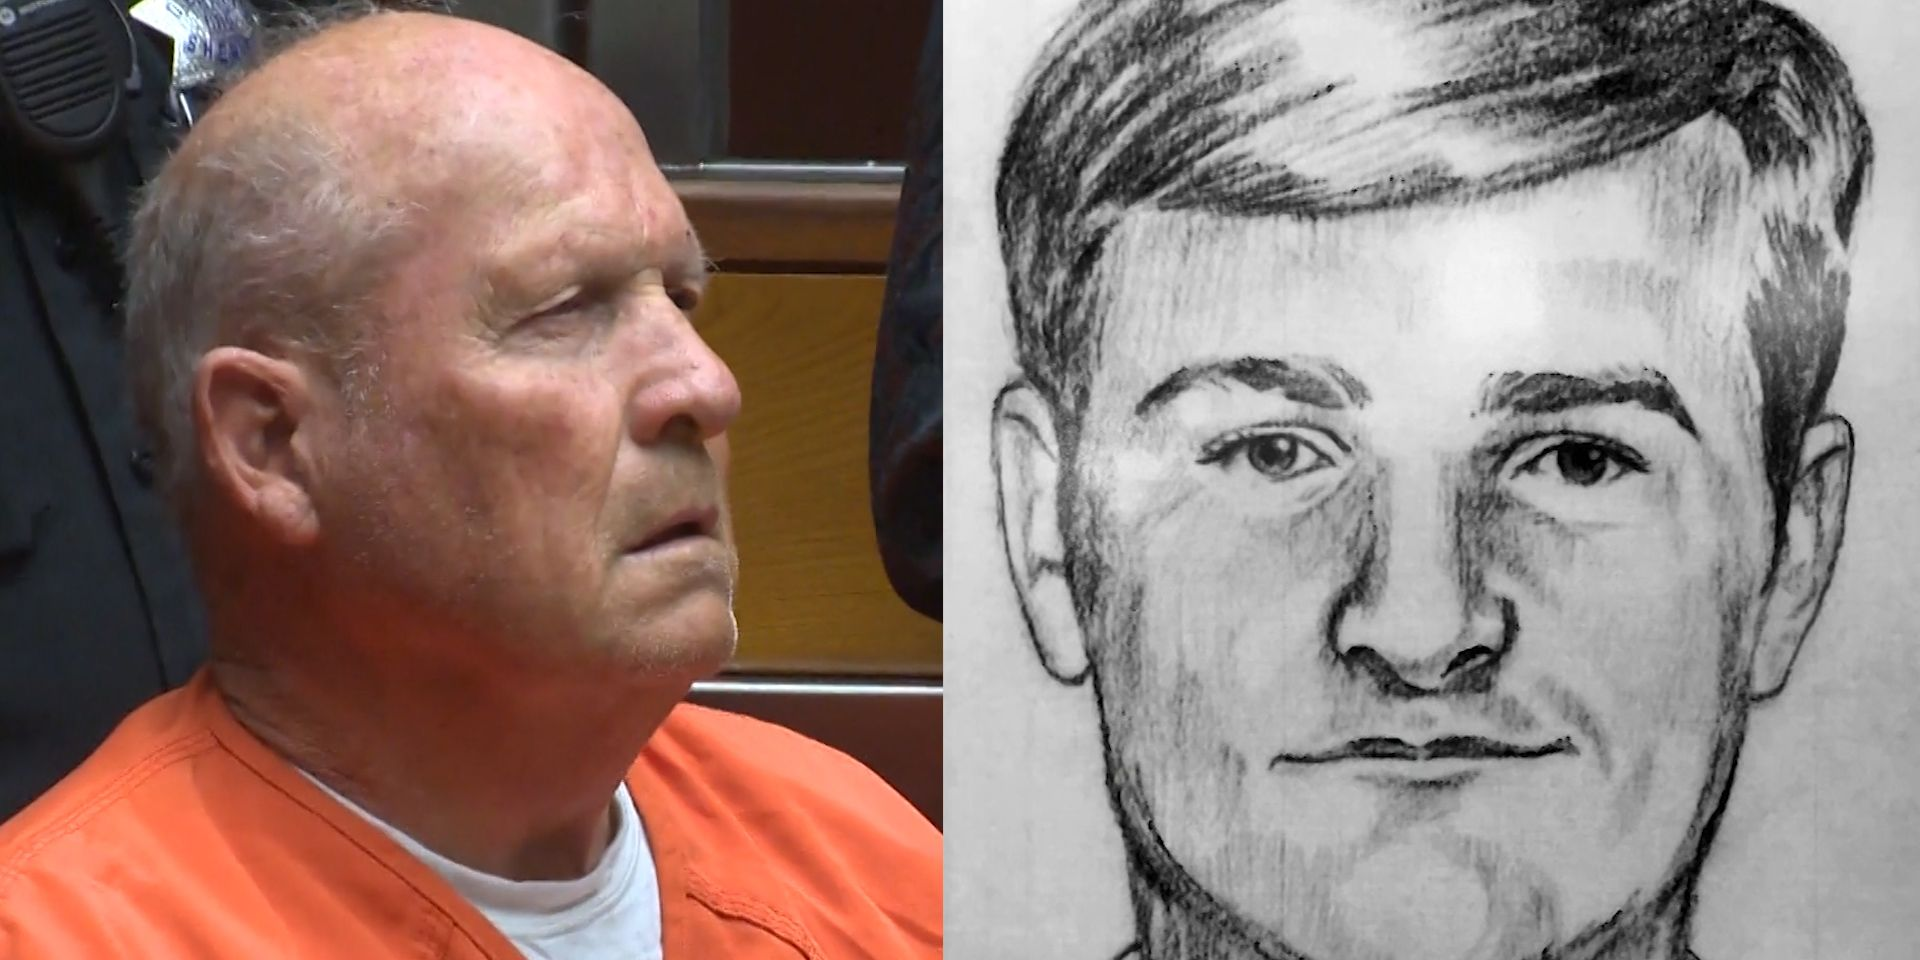 Golden State Killer pleads guilty to multiple murders and rapes to avoid death penalty